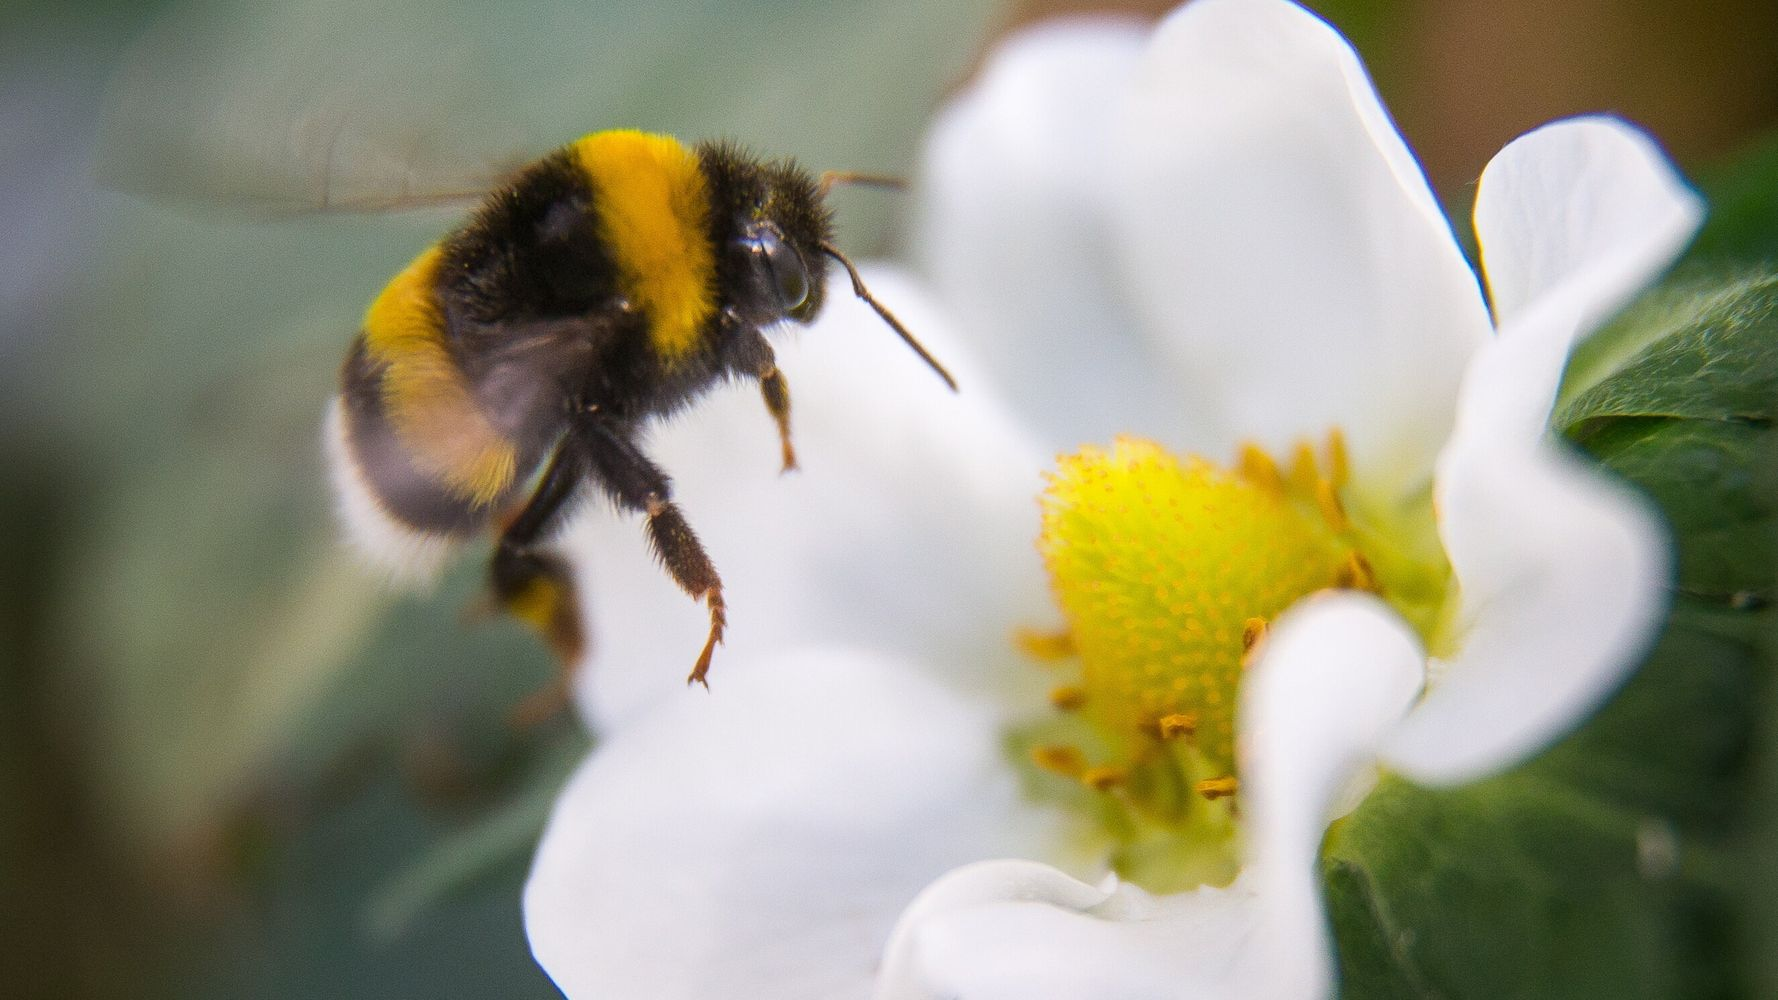 The Climate Crisis Is Threatening Bees. Here's What's Helping To Save Them.